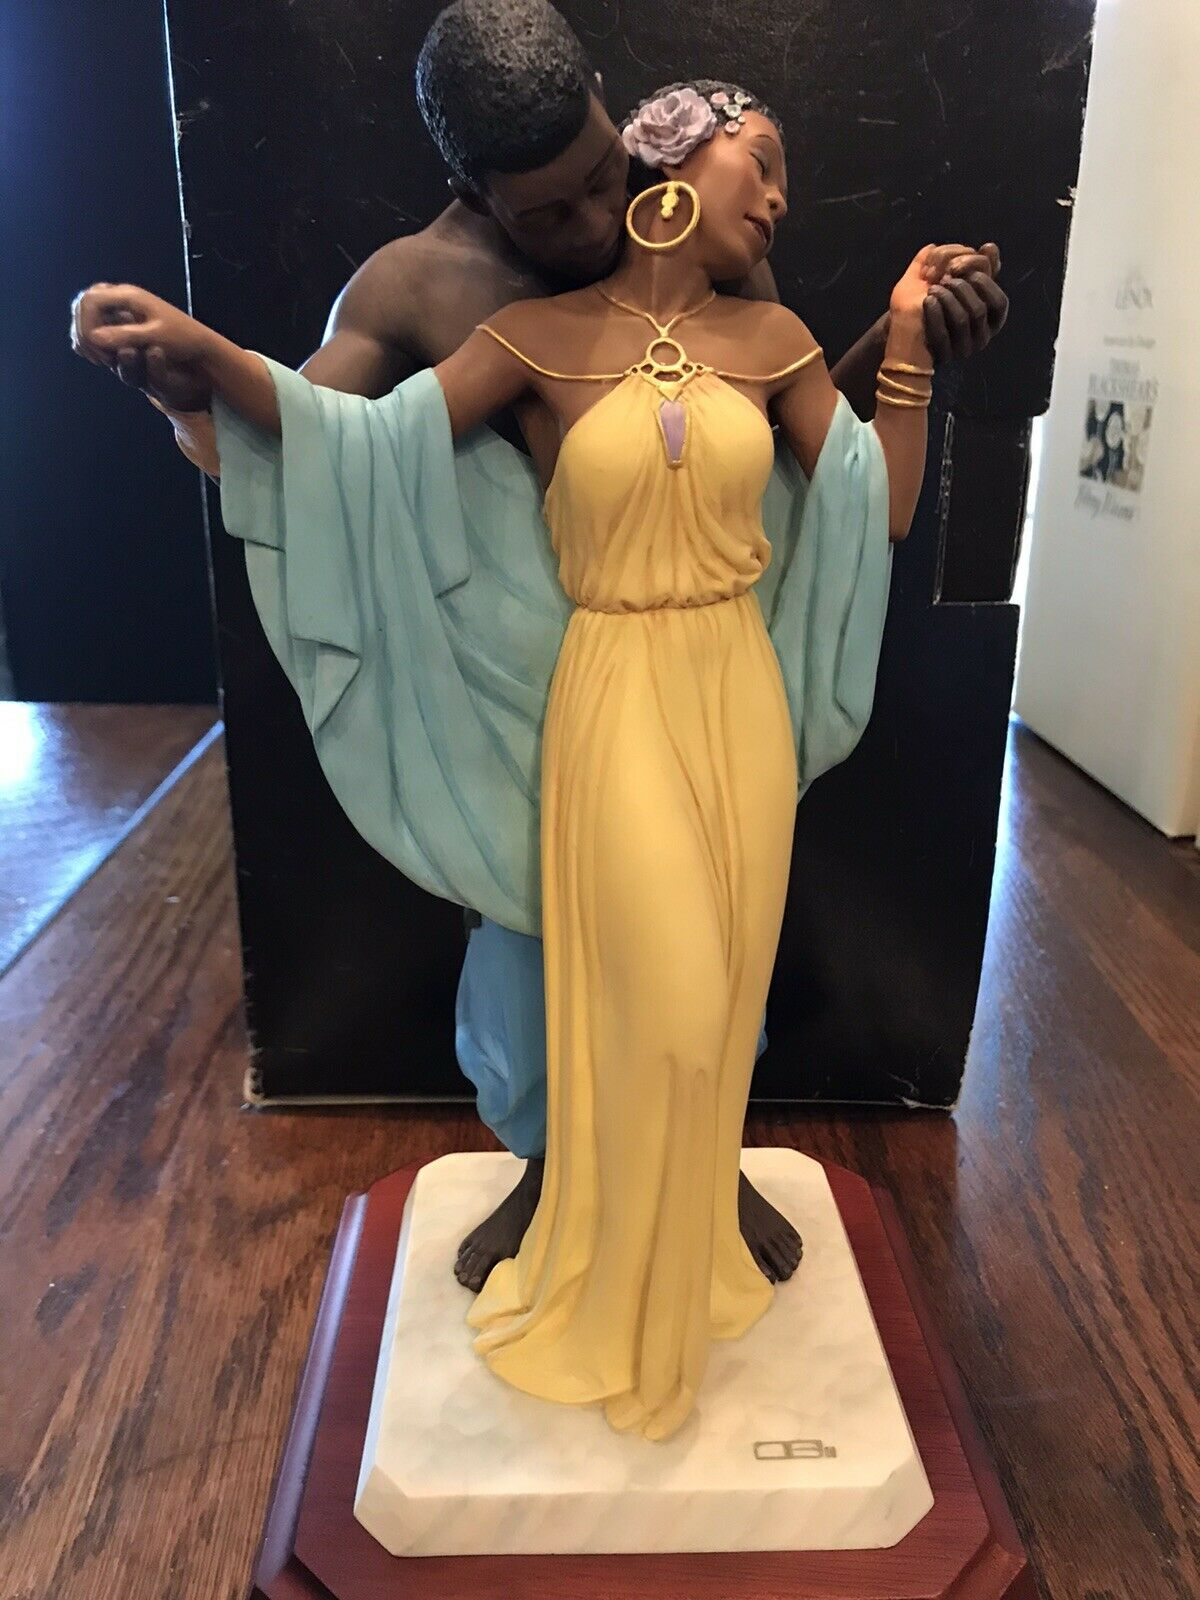 Thomas blackshear ebony visions the family limited edition first issue